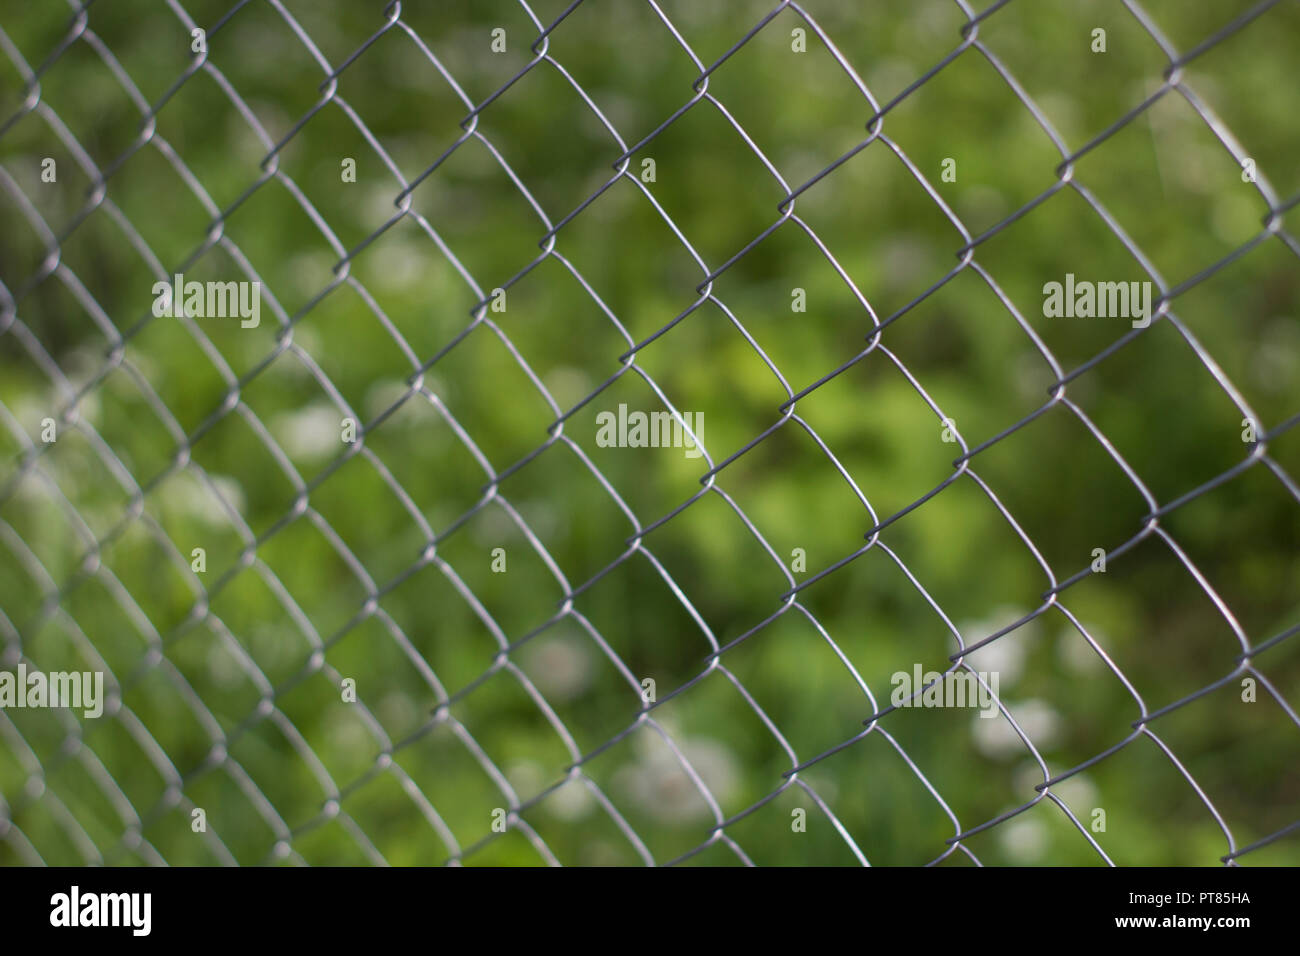 Rabitz Grid Close up on Green Background of Garden. - Stock Image